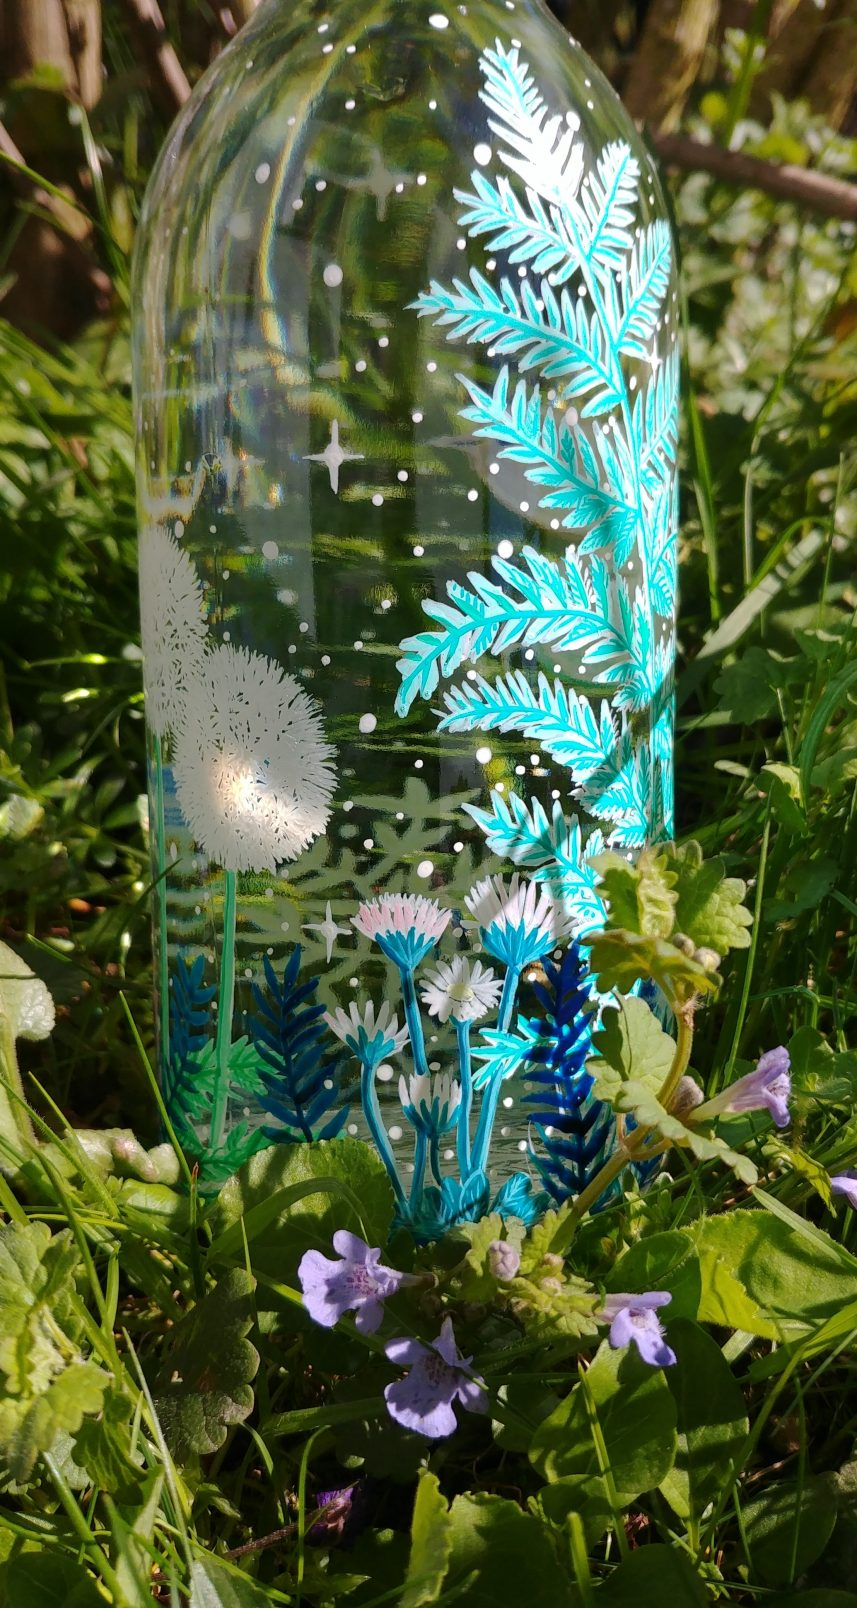 Birds in the meadow, hand painted meadow forest plants illustration, flower power glass water bottle, animal nature lover unique gift, fern, grass blue flowers painting